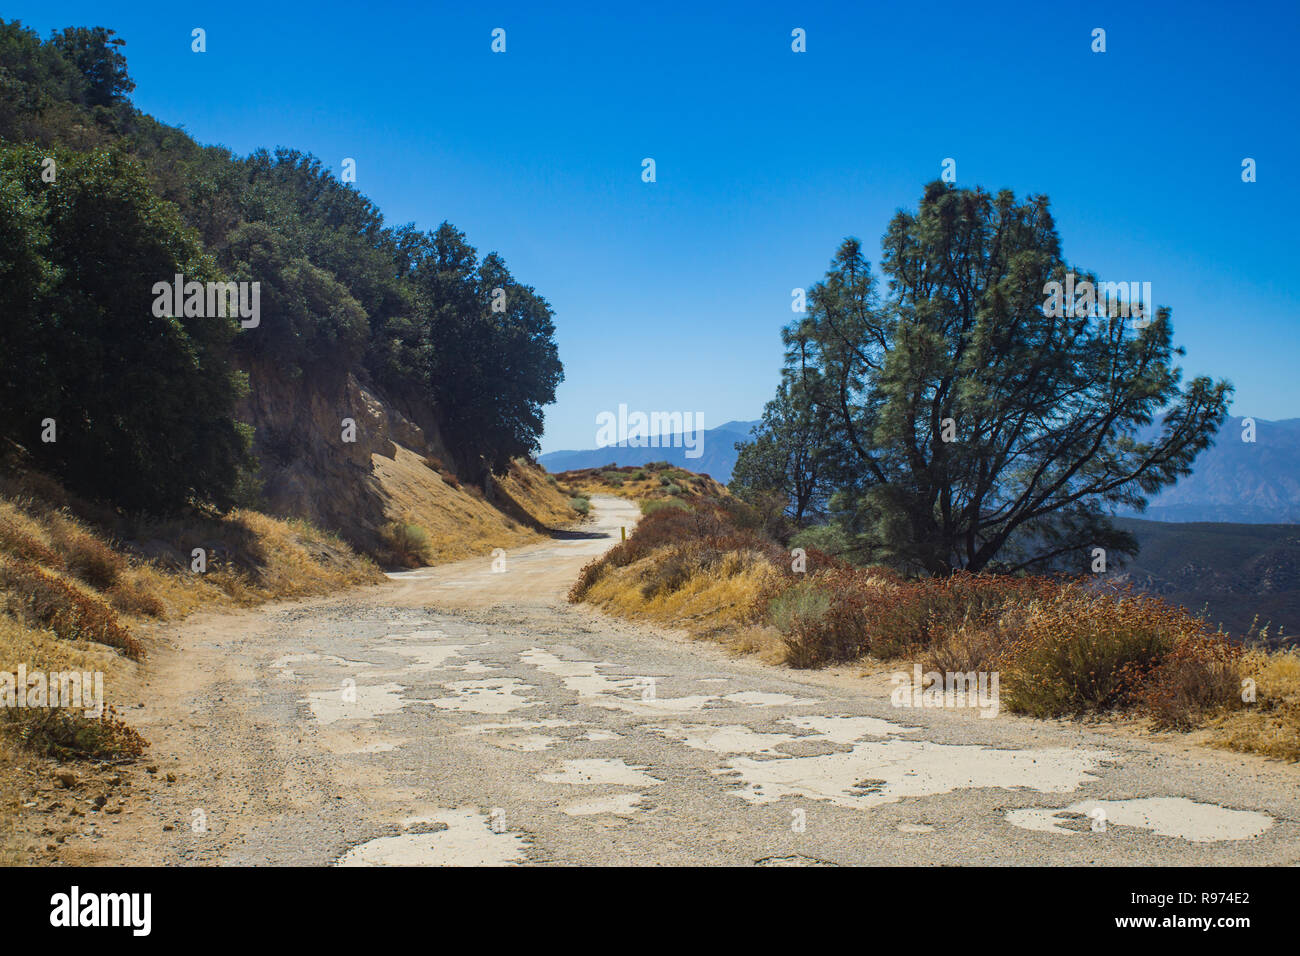 Rutted and pothole road leading into the mountains of southern California's Angeles National Forest. - Stock Image